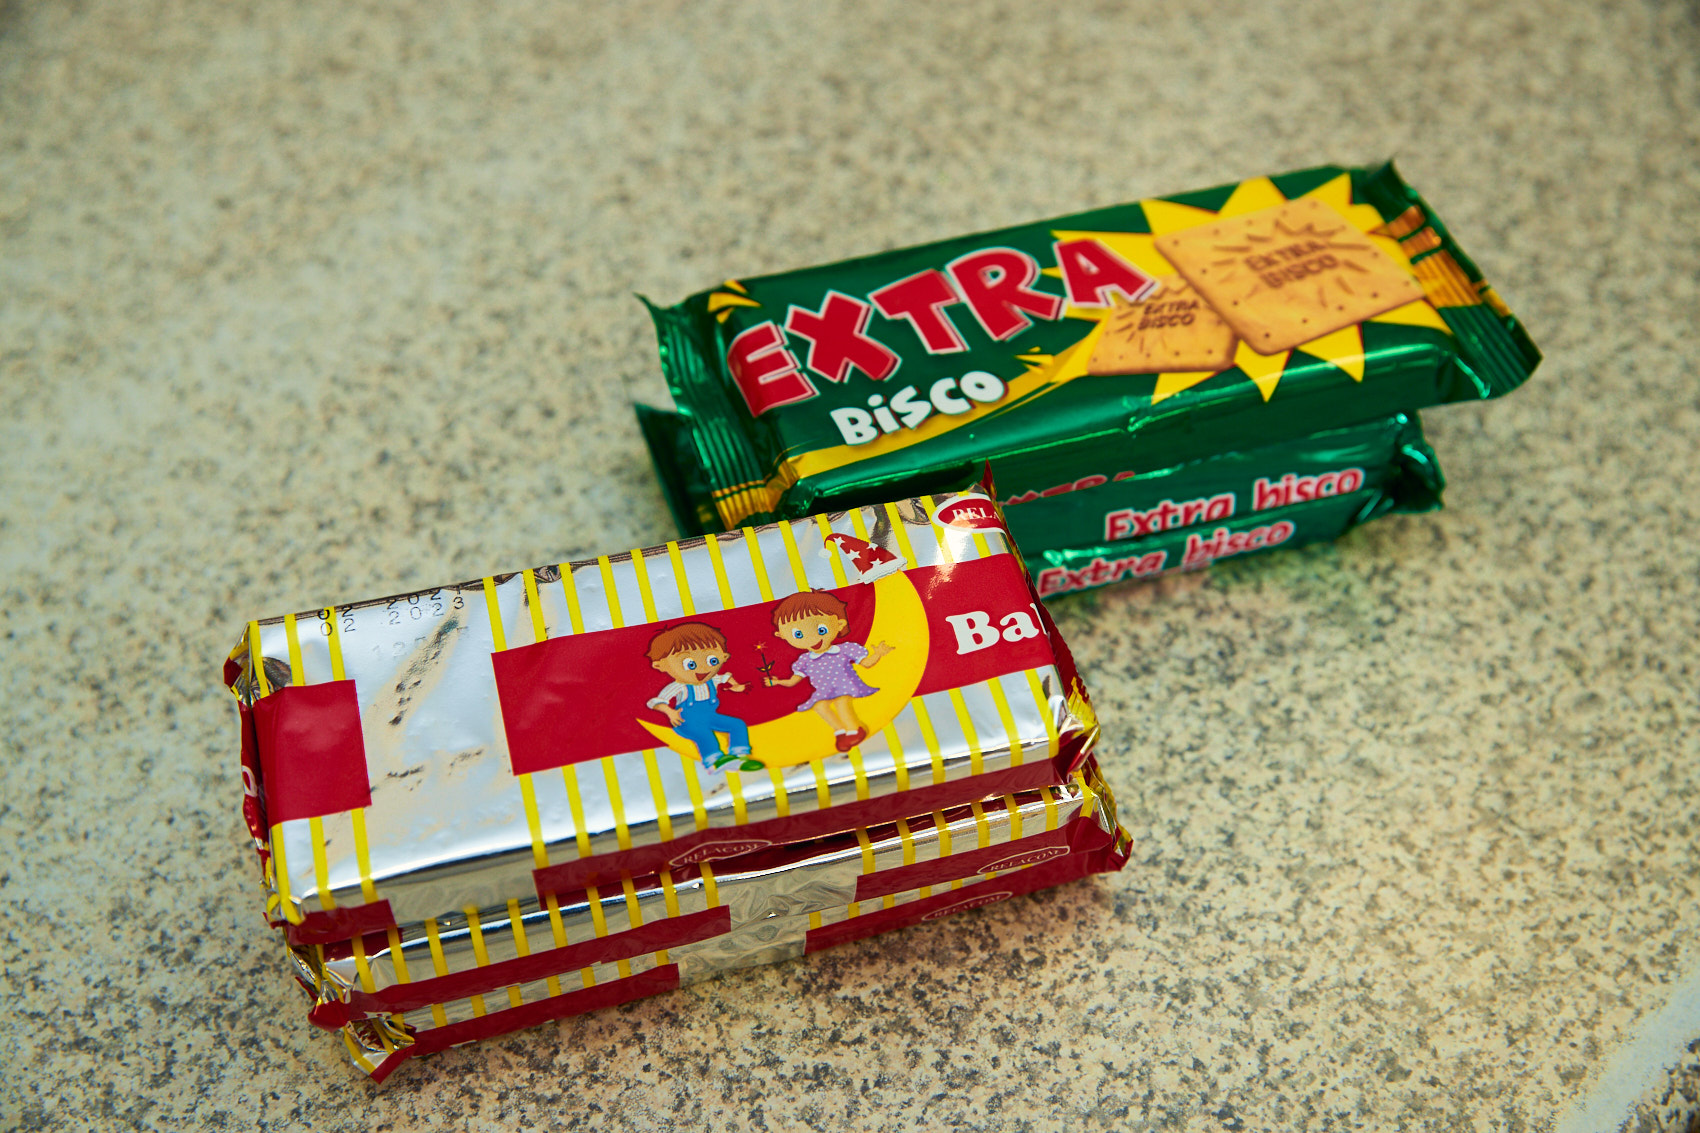 Extra Bisco - a proud local biscuit brand since the early 90's - is a common household name, and a favorite of every child growing up in Katanga. A wholesome biscuit with a zest of citrus flavor gives it its trademark taste for which it is loved.